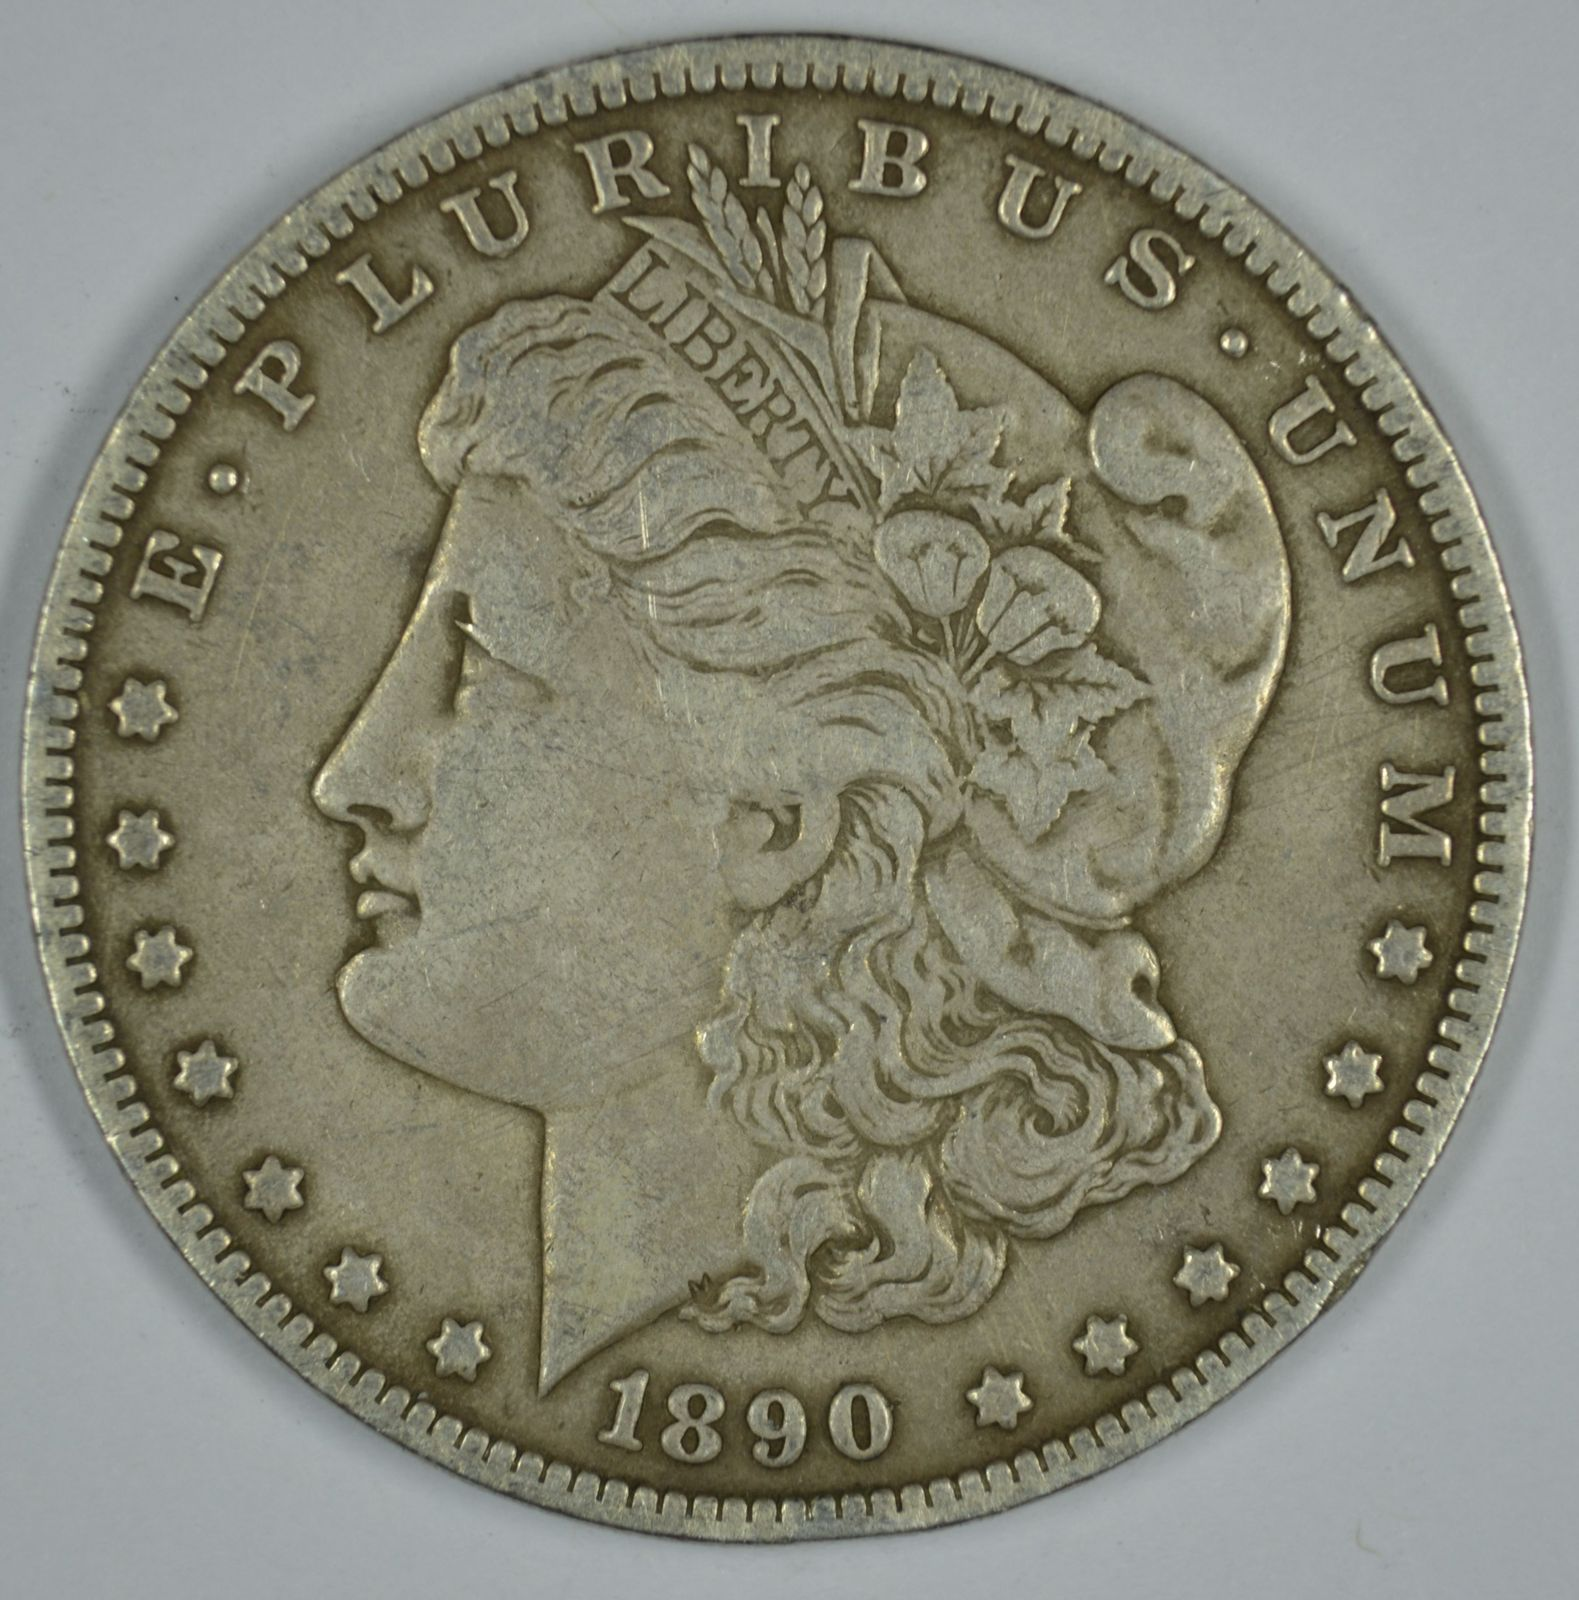 Primary image for 1890 O Morgan circulated silver dollar VG details